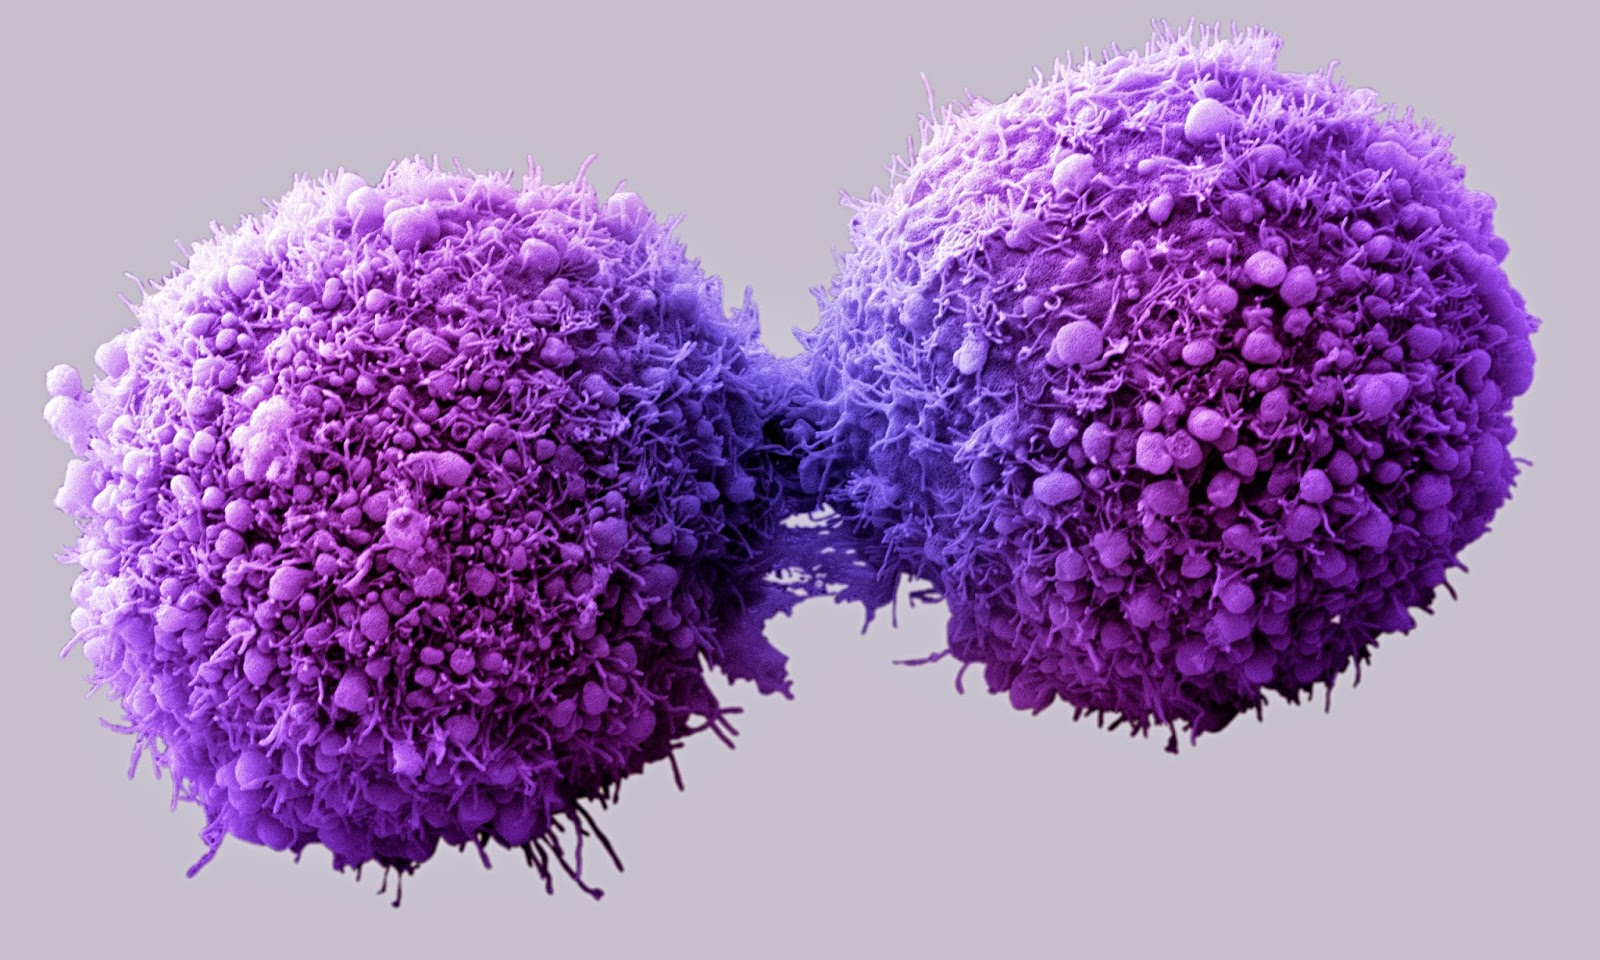 Researchers Uncover Key Cancer-Promoting Gene